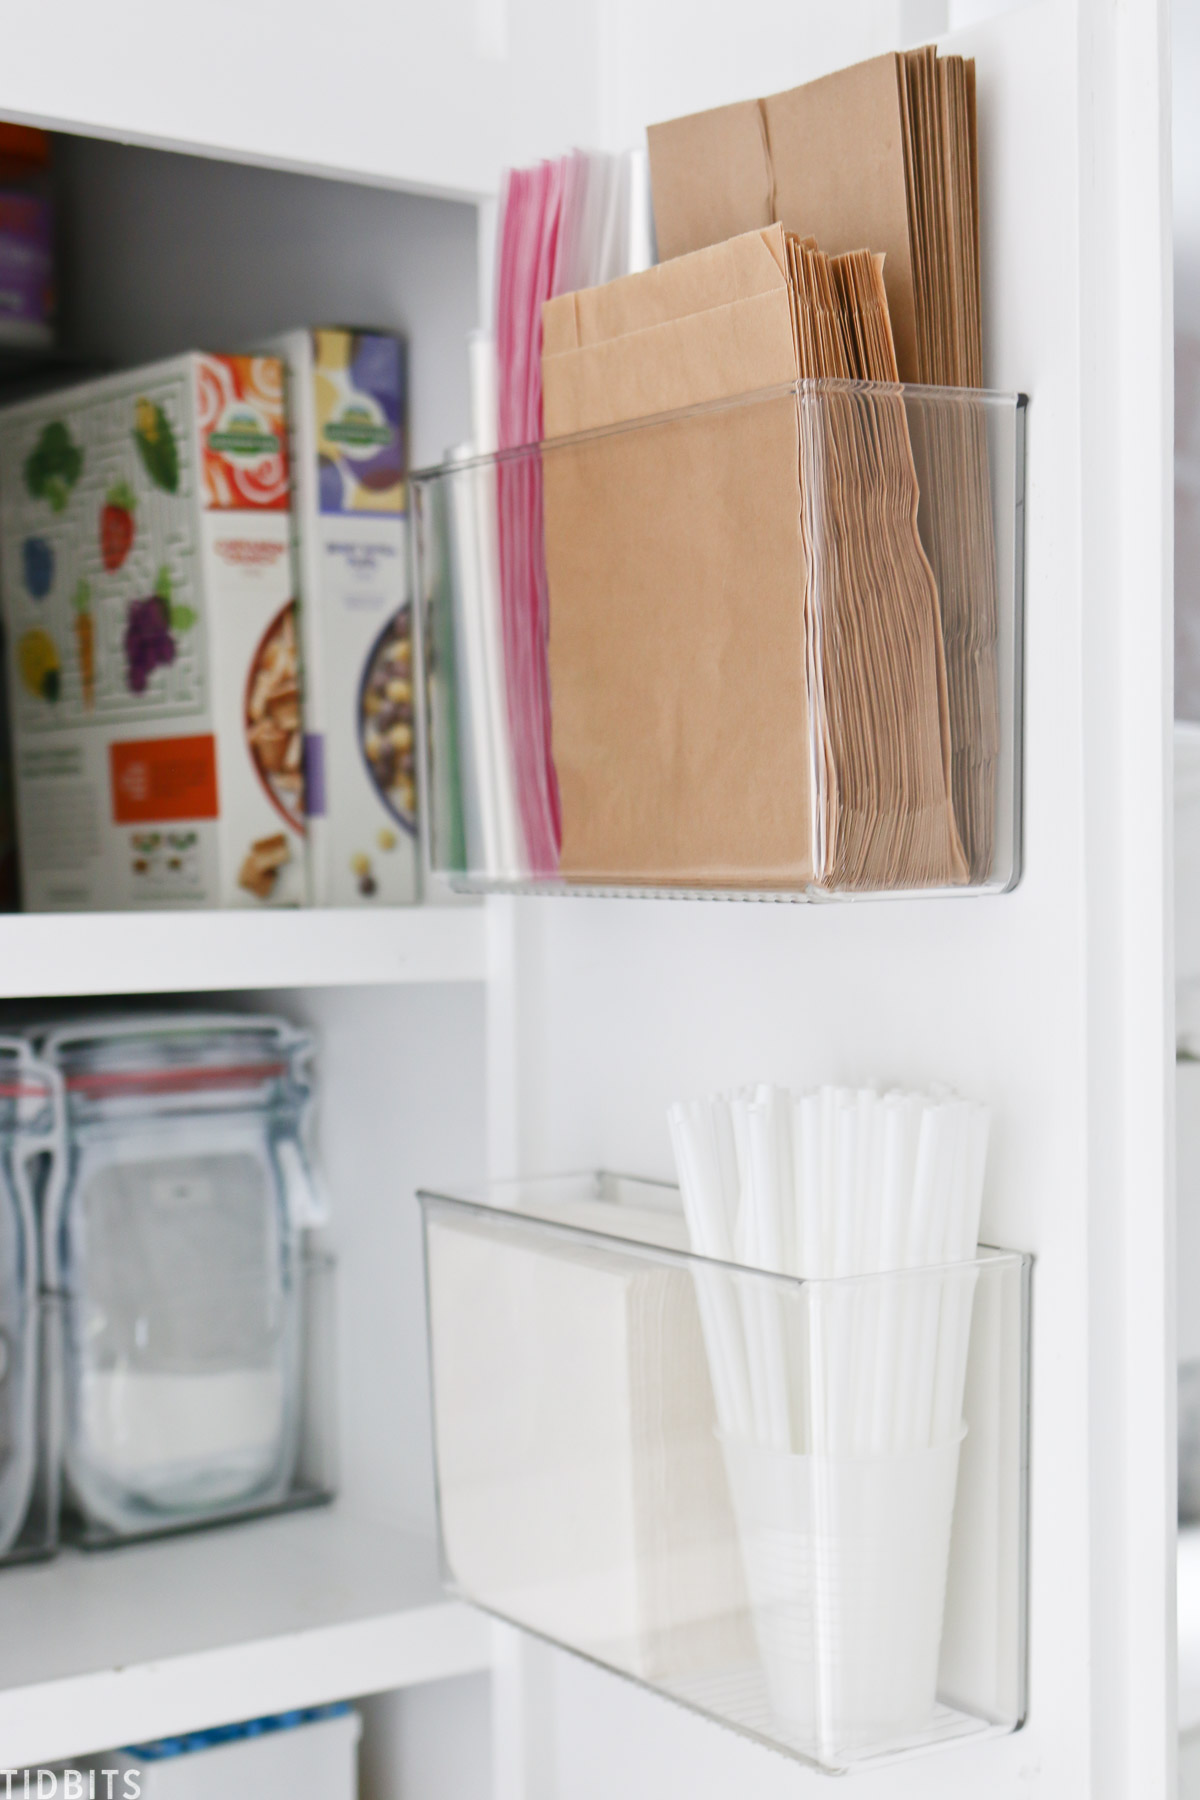 Storing paper products on the cabinet door fronts